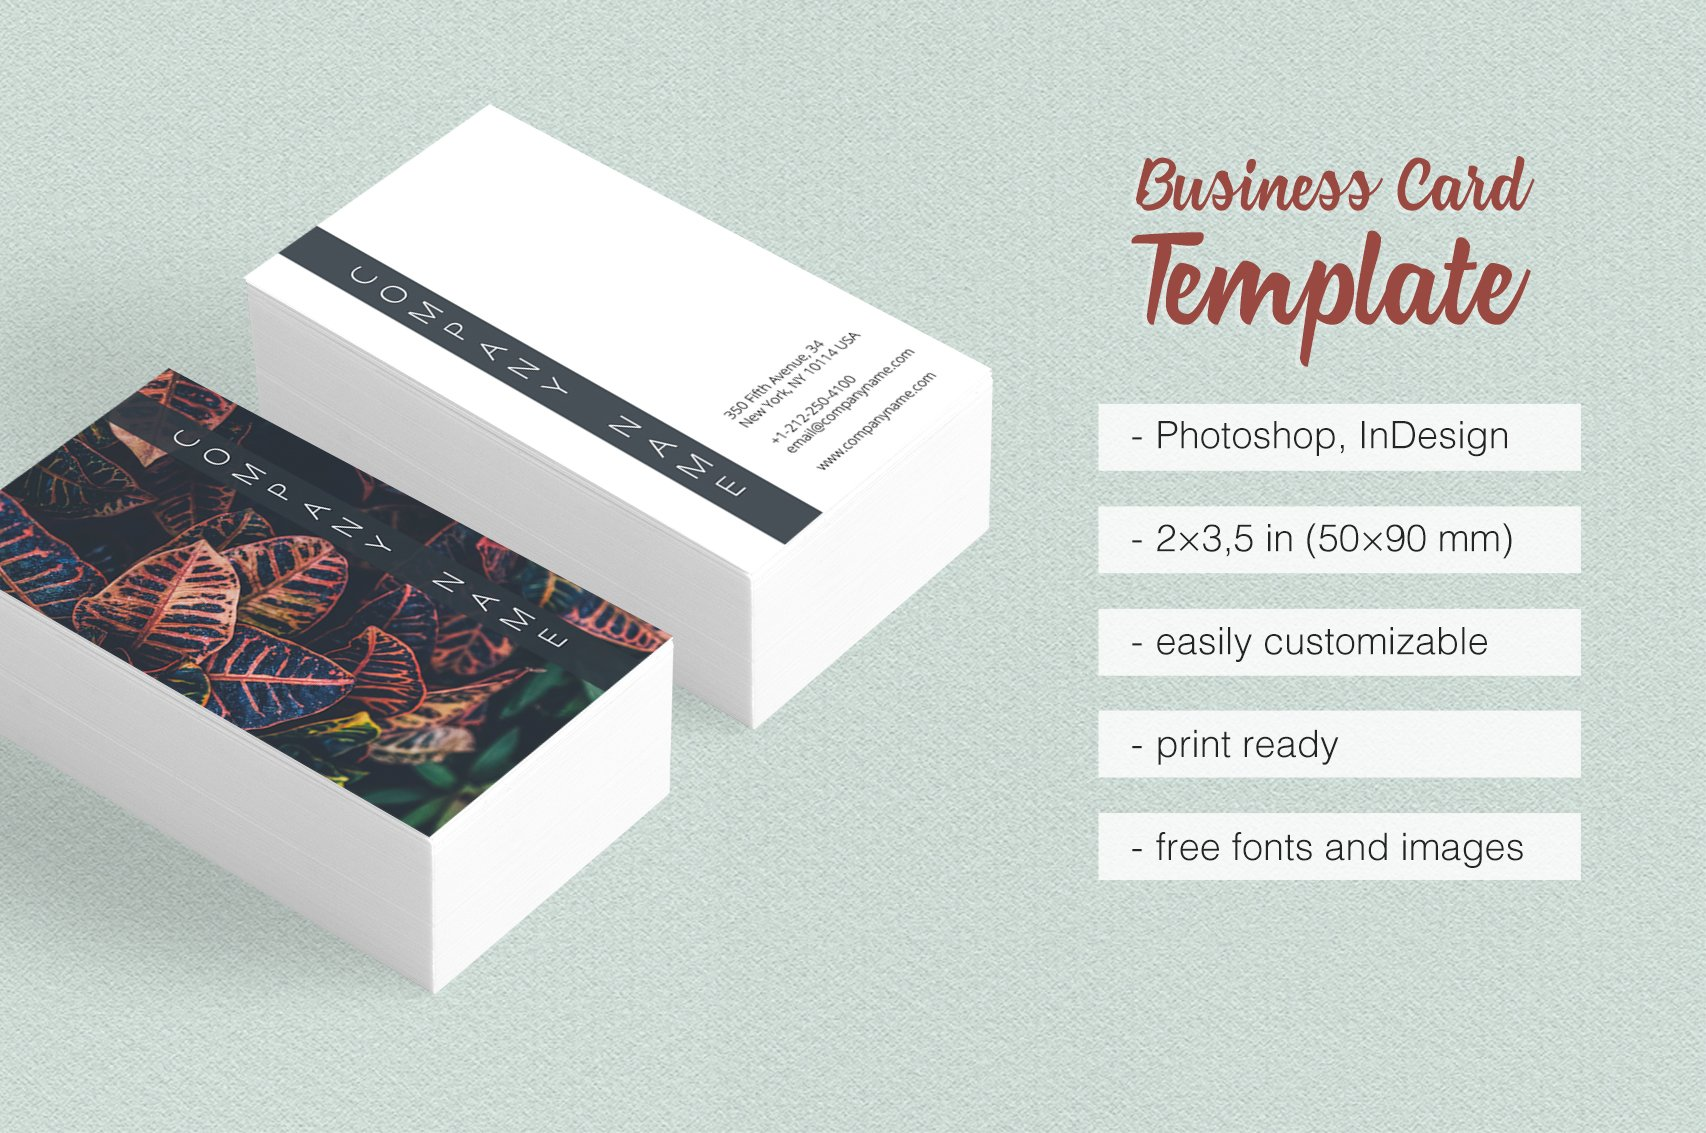 Travel Photographer Business Card ~ Business Card Templates ...